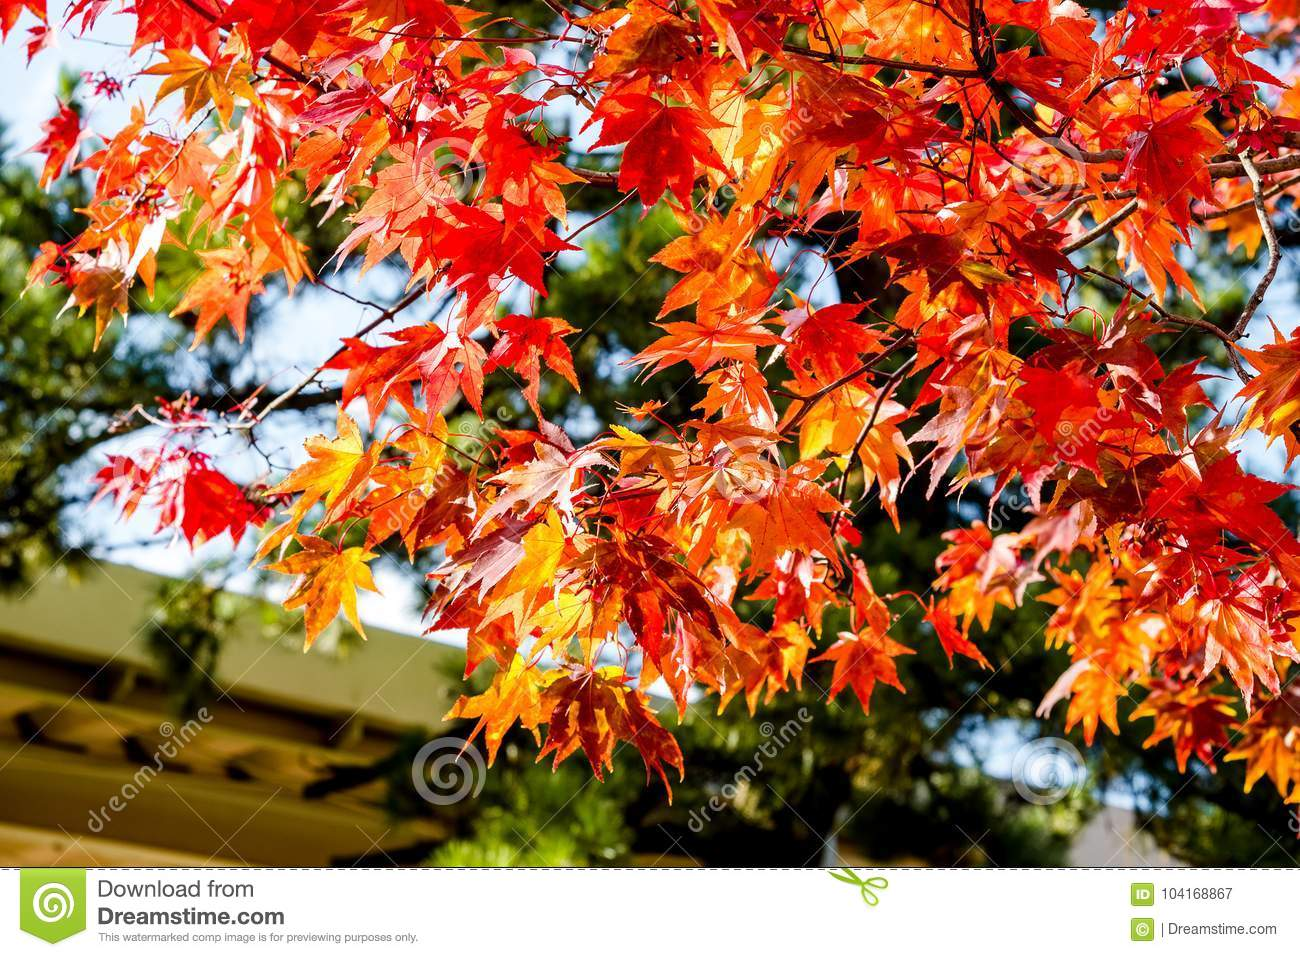 Maple tree roof back ground, maple leaves turn color from green to yellow, orange and bright red, the roof house background in sea